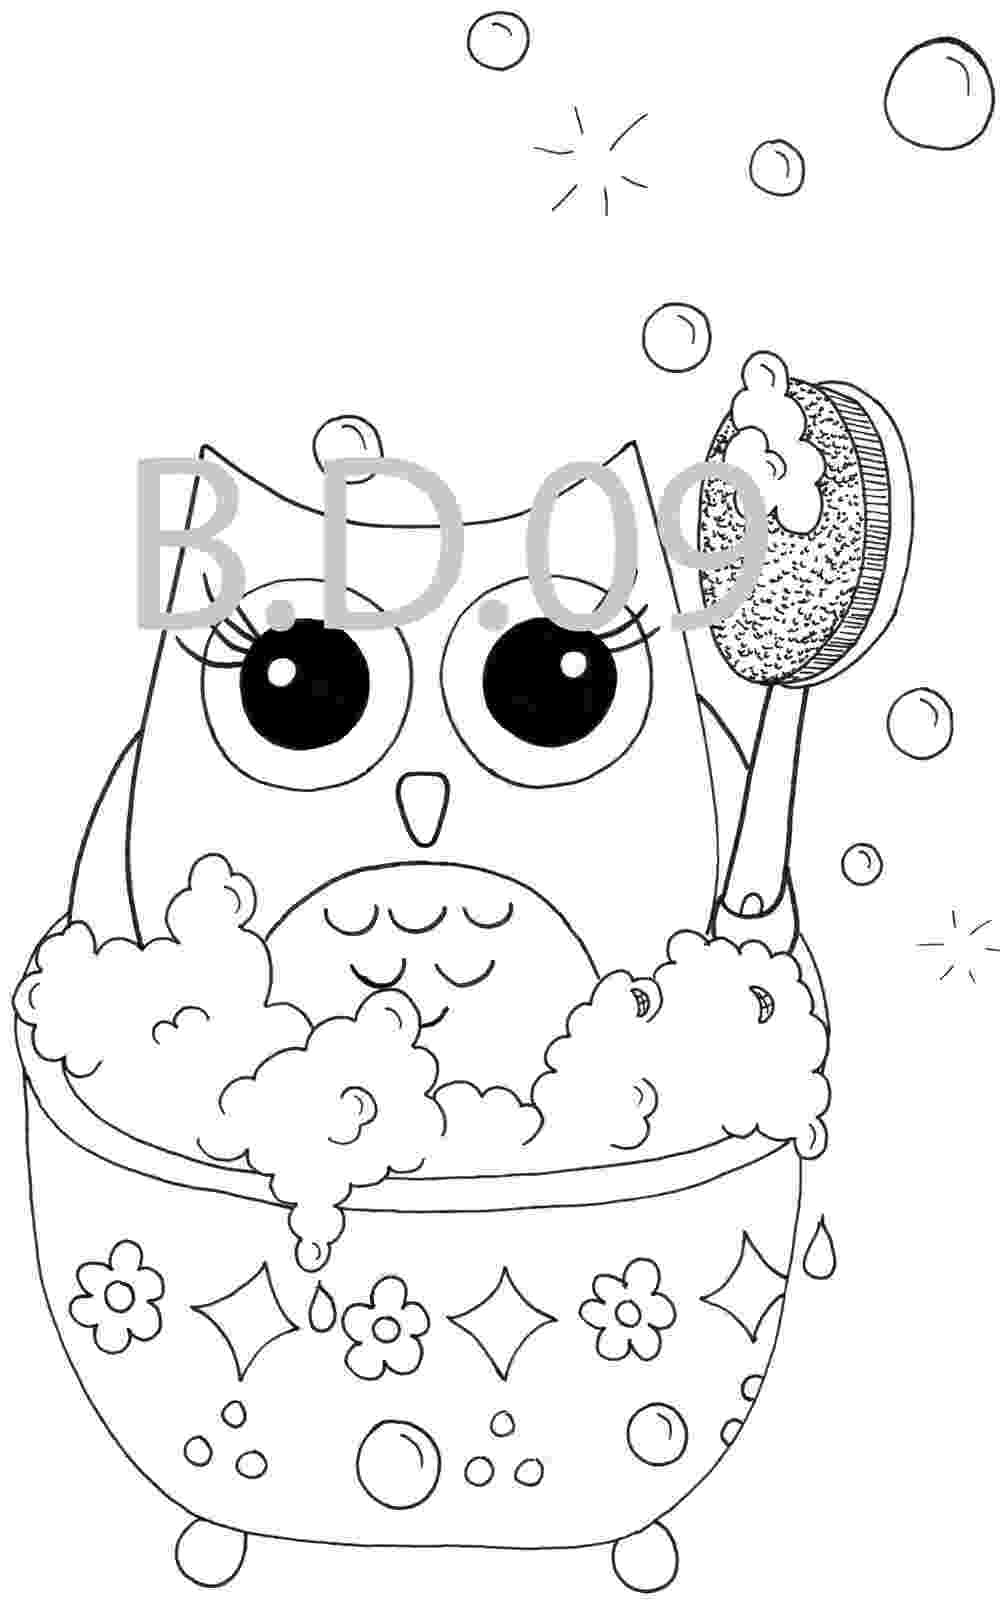 cute coloring pages of owls colouring pages owl themed updated 2011 paper crafts cute owls of pages coloring